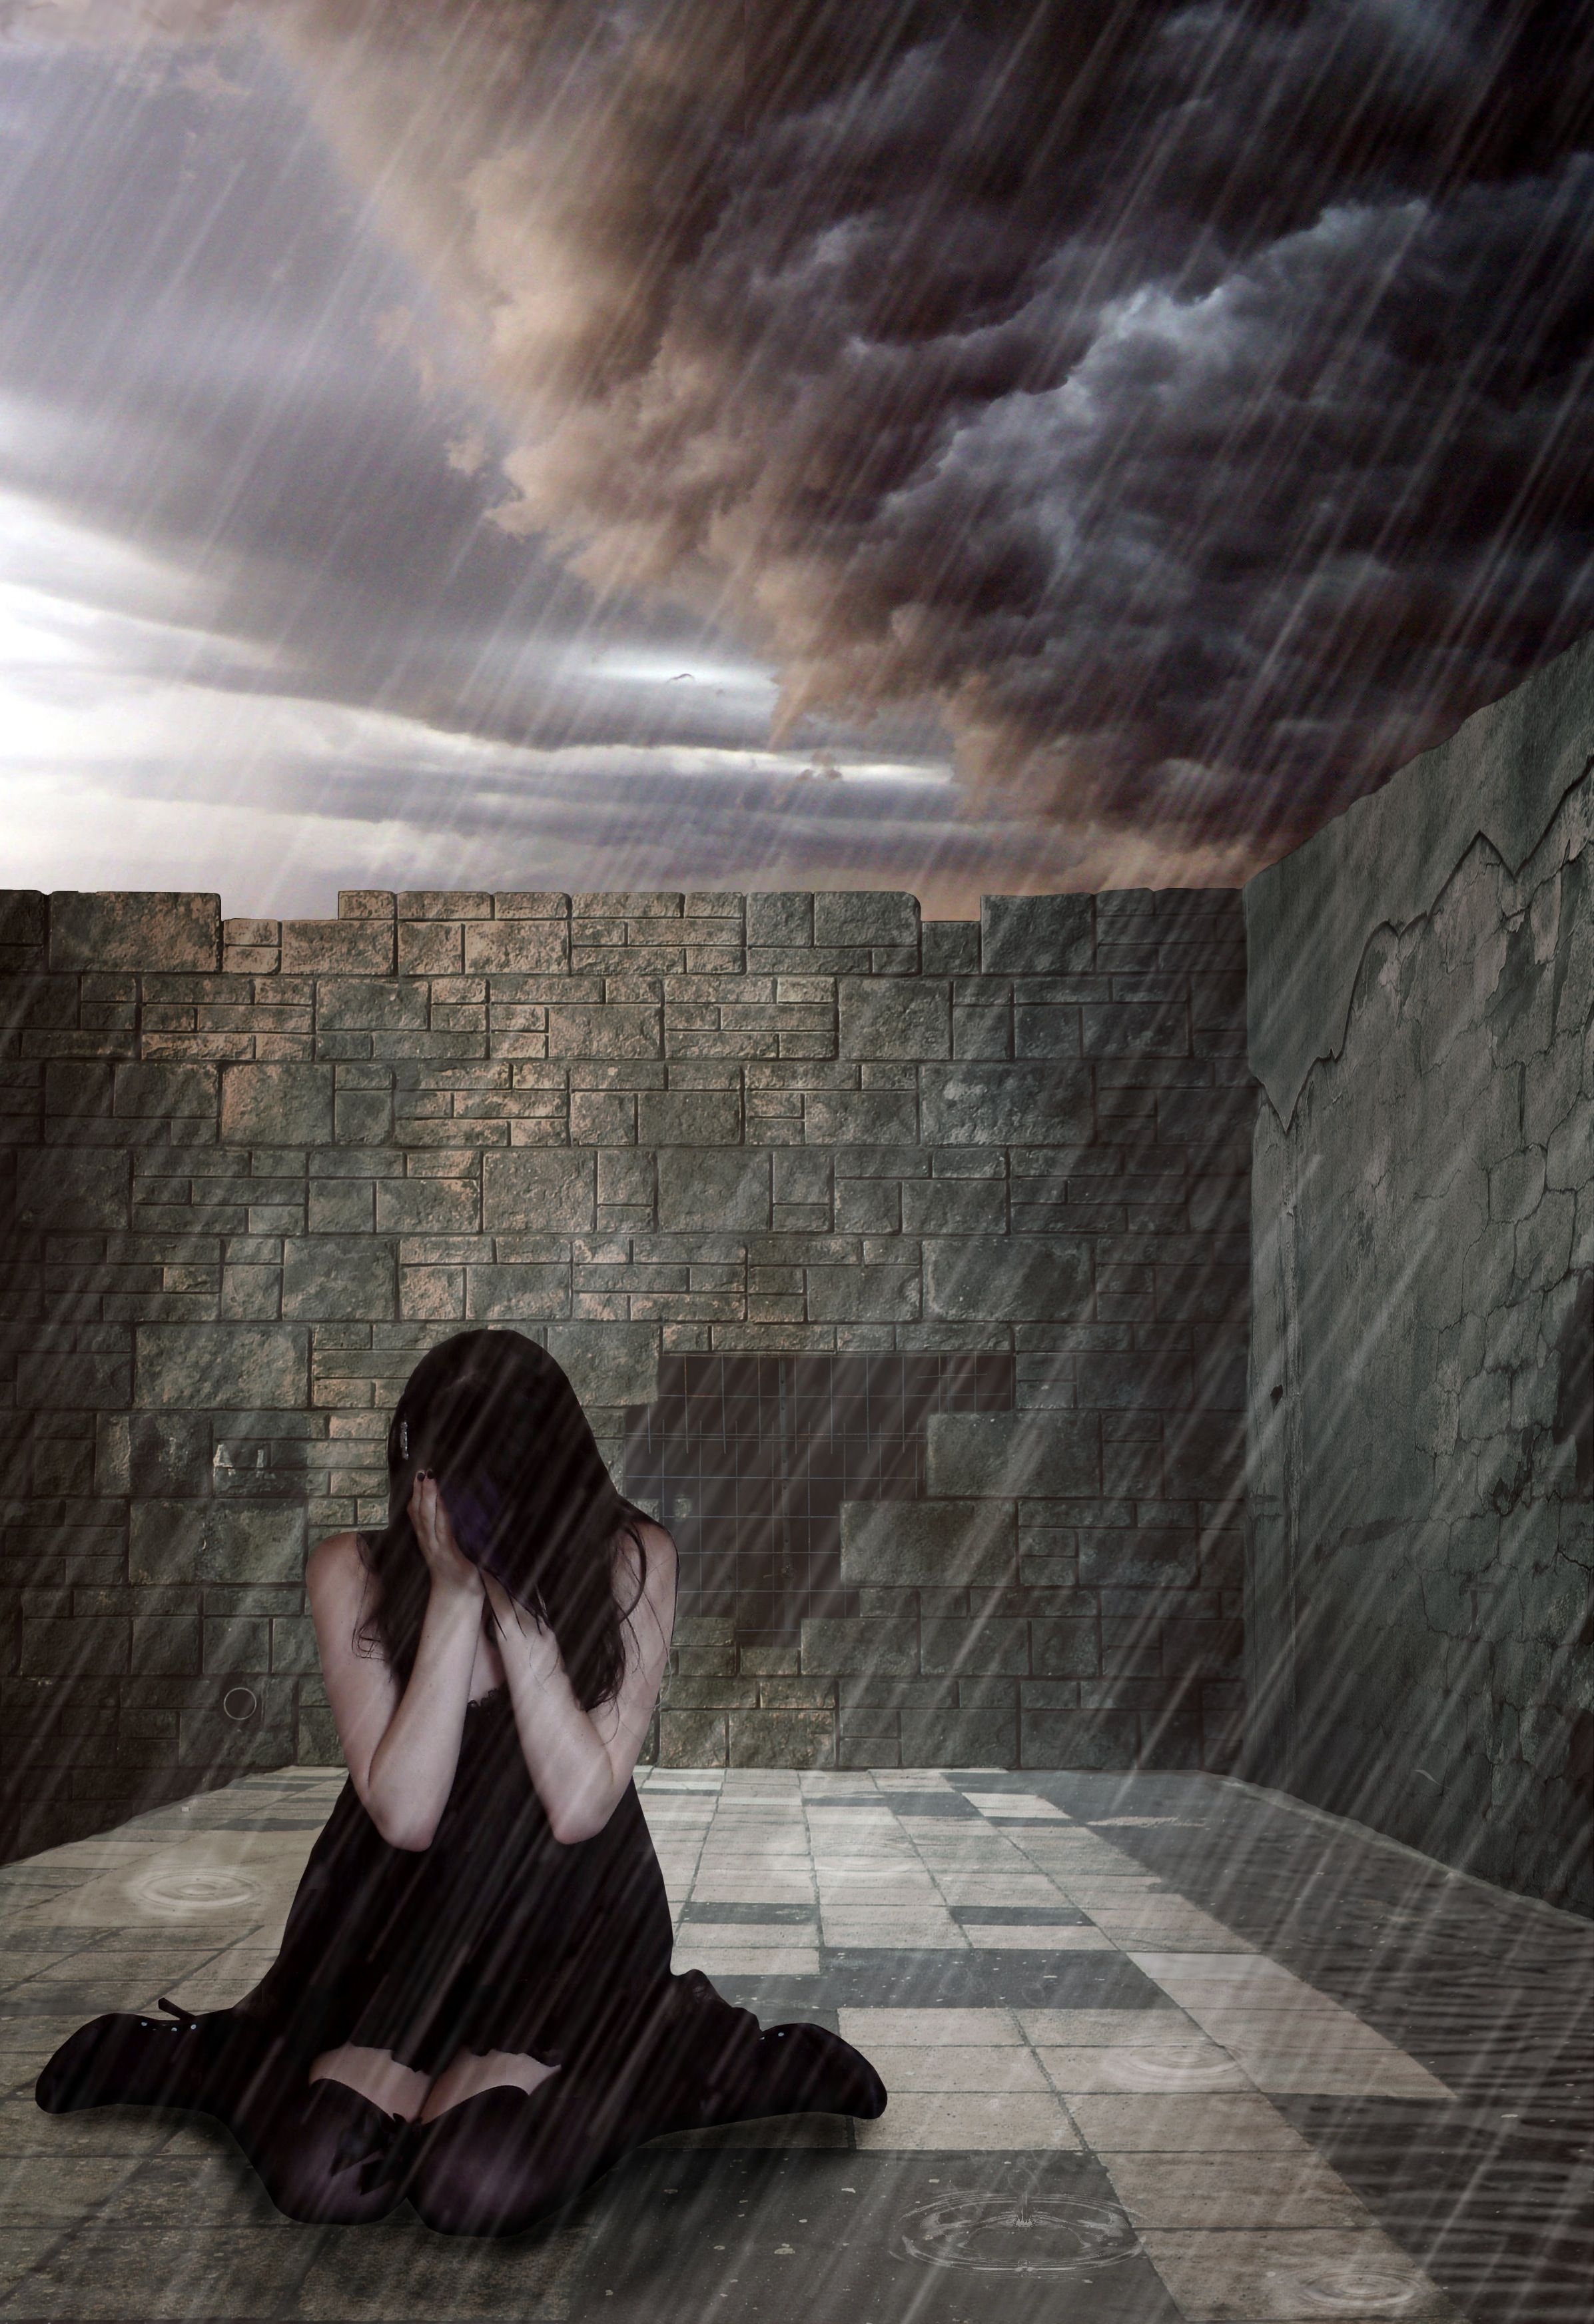 Girl crying in the rain sad art Pinterest Crying and